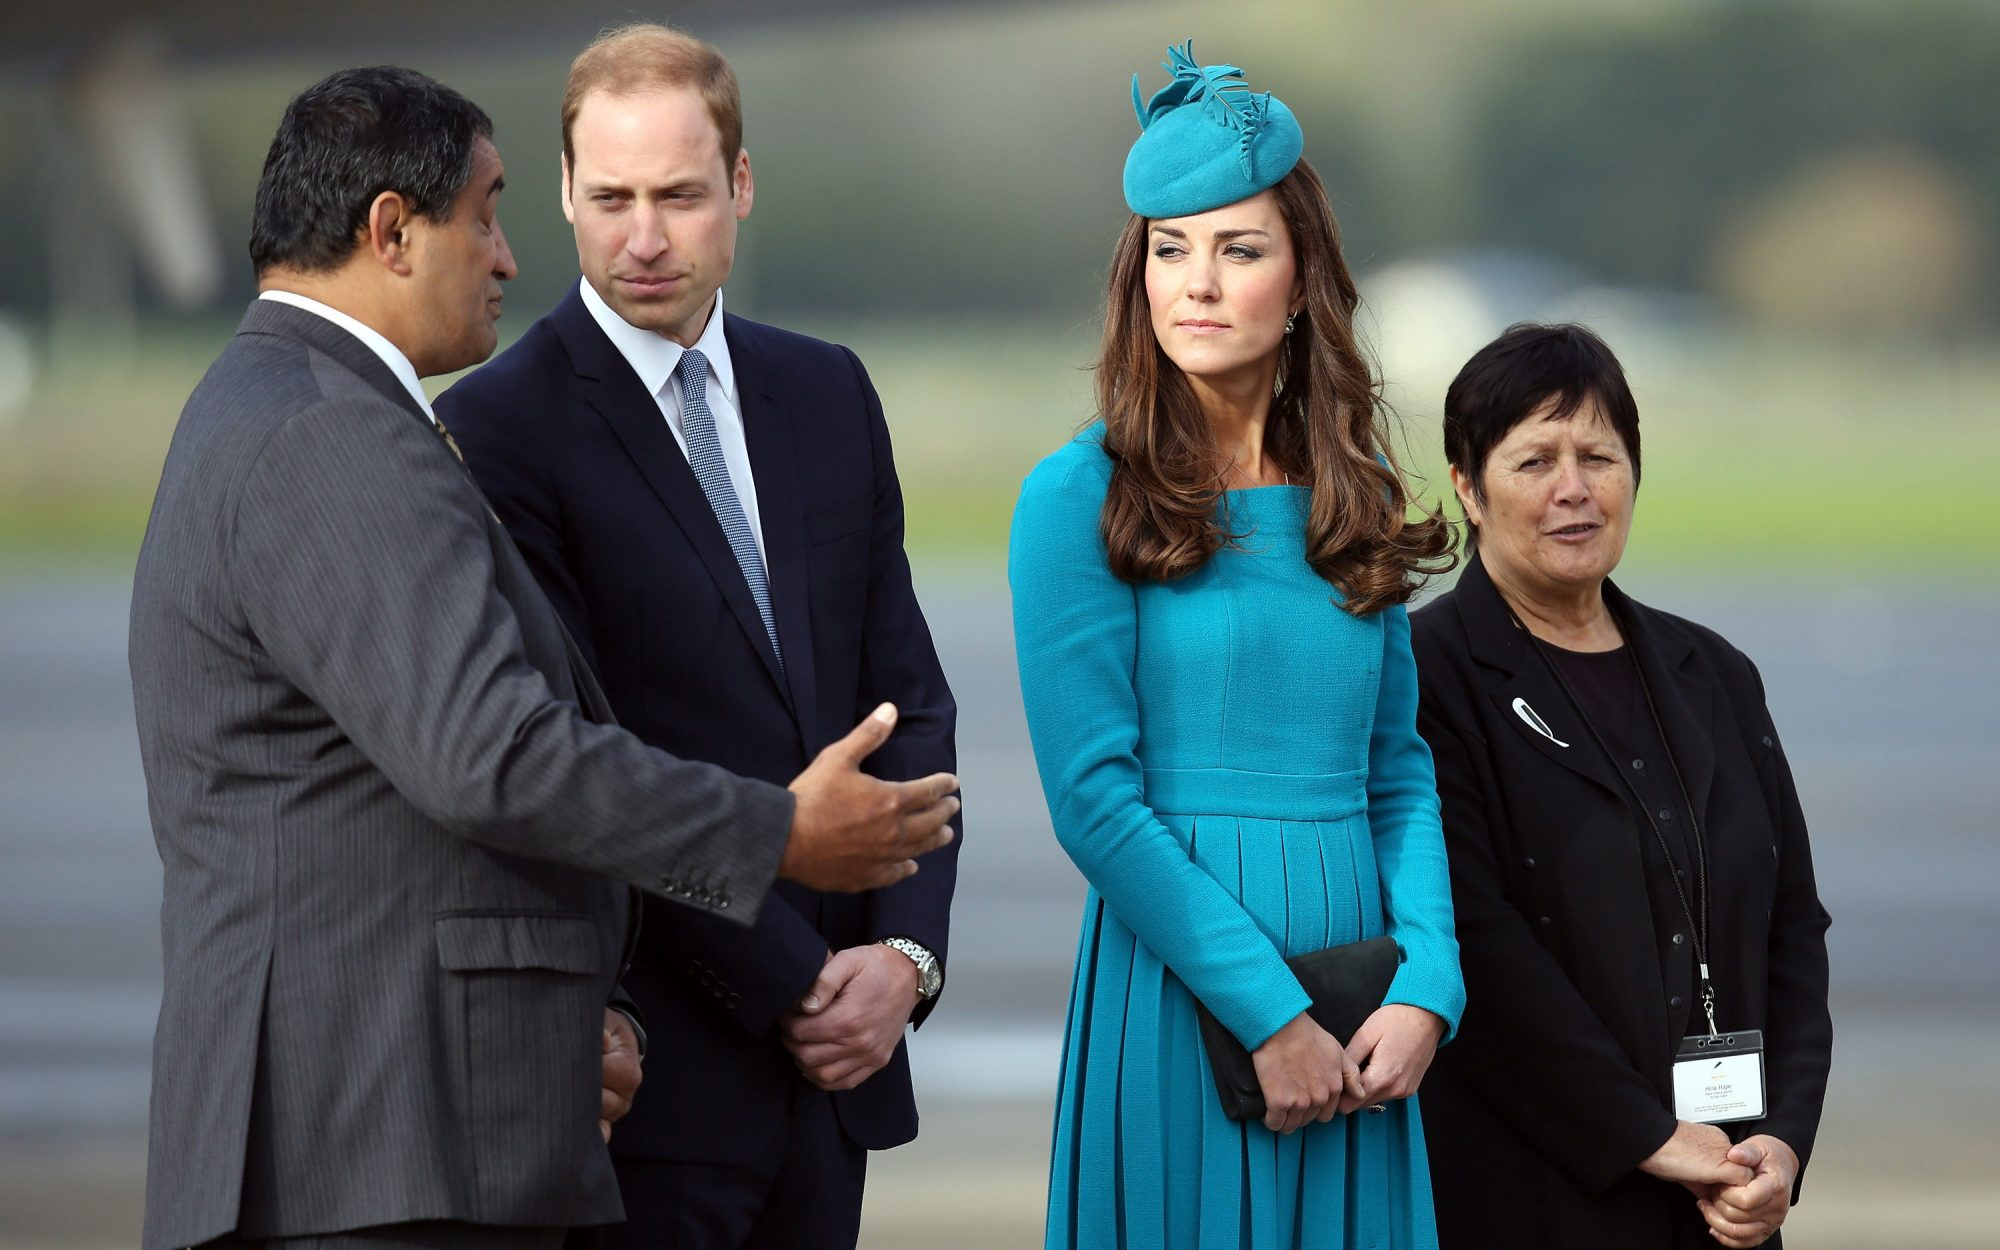 Kate Middleton's outfit in New Zealand